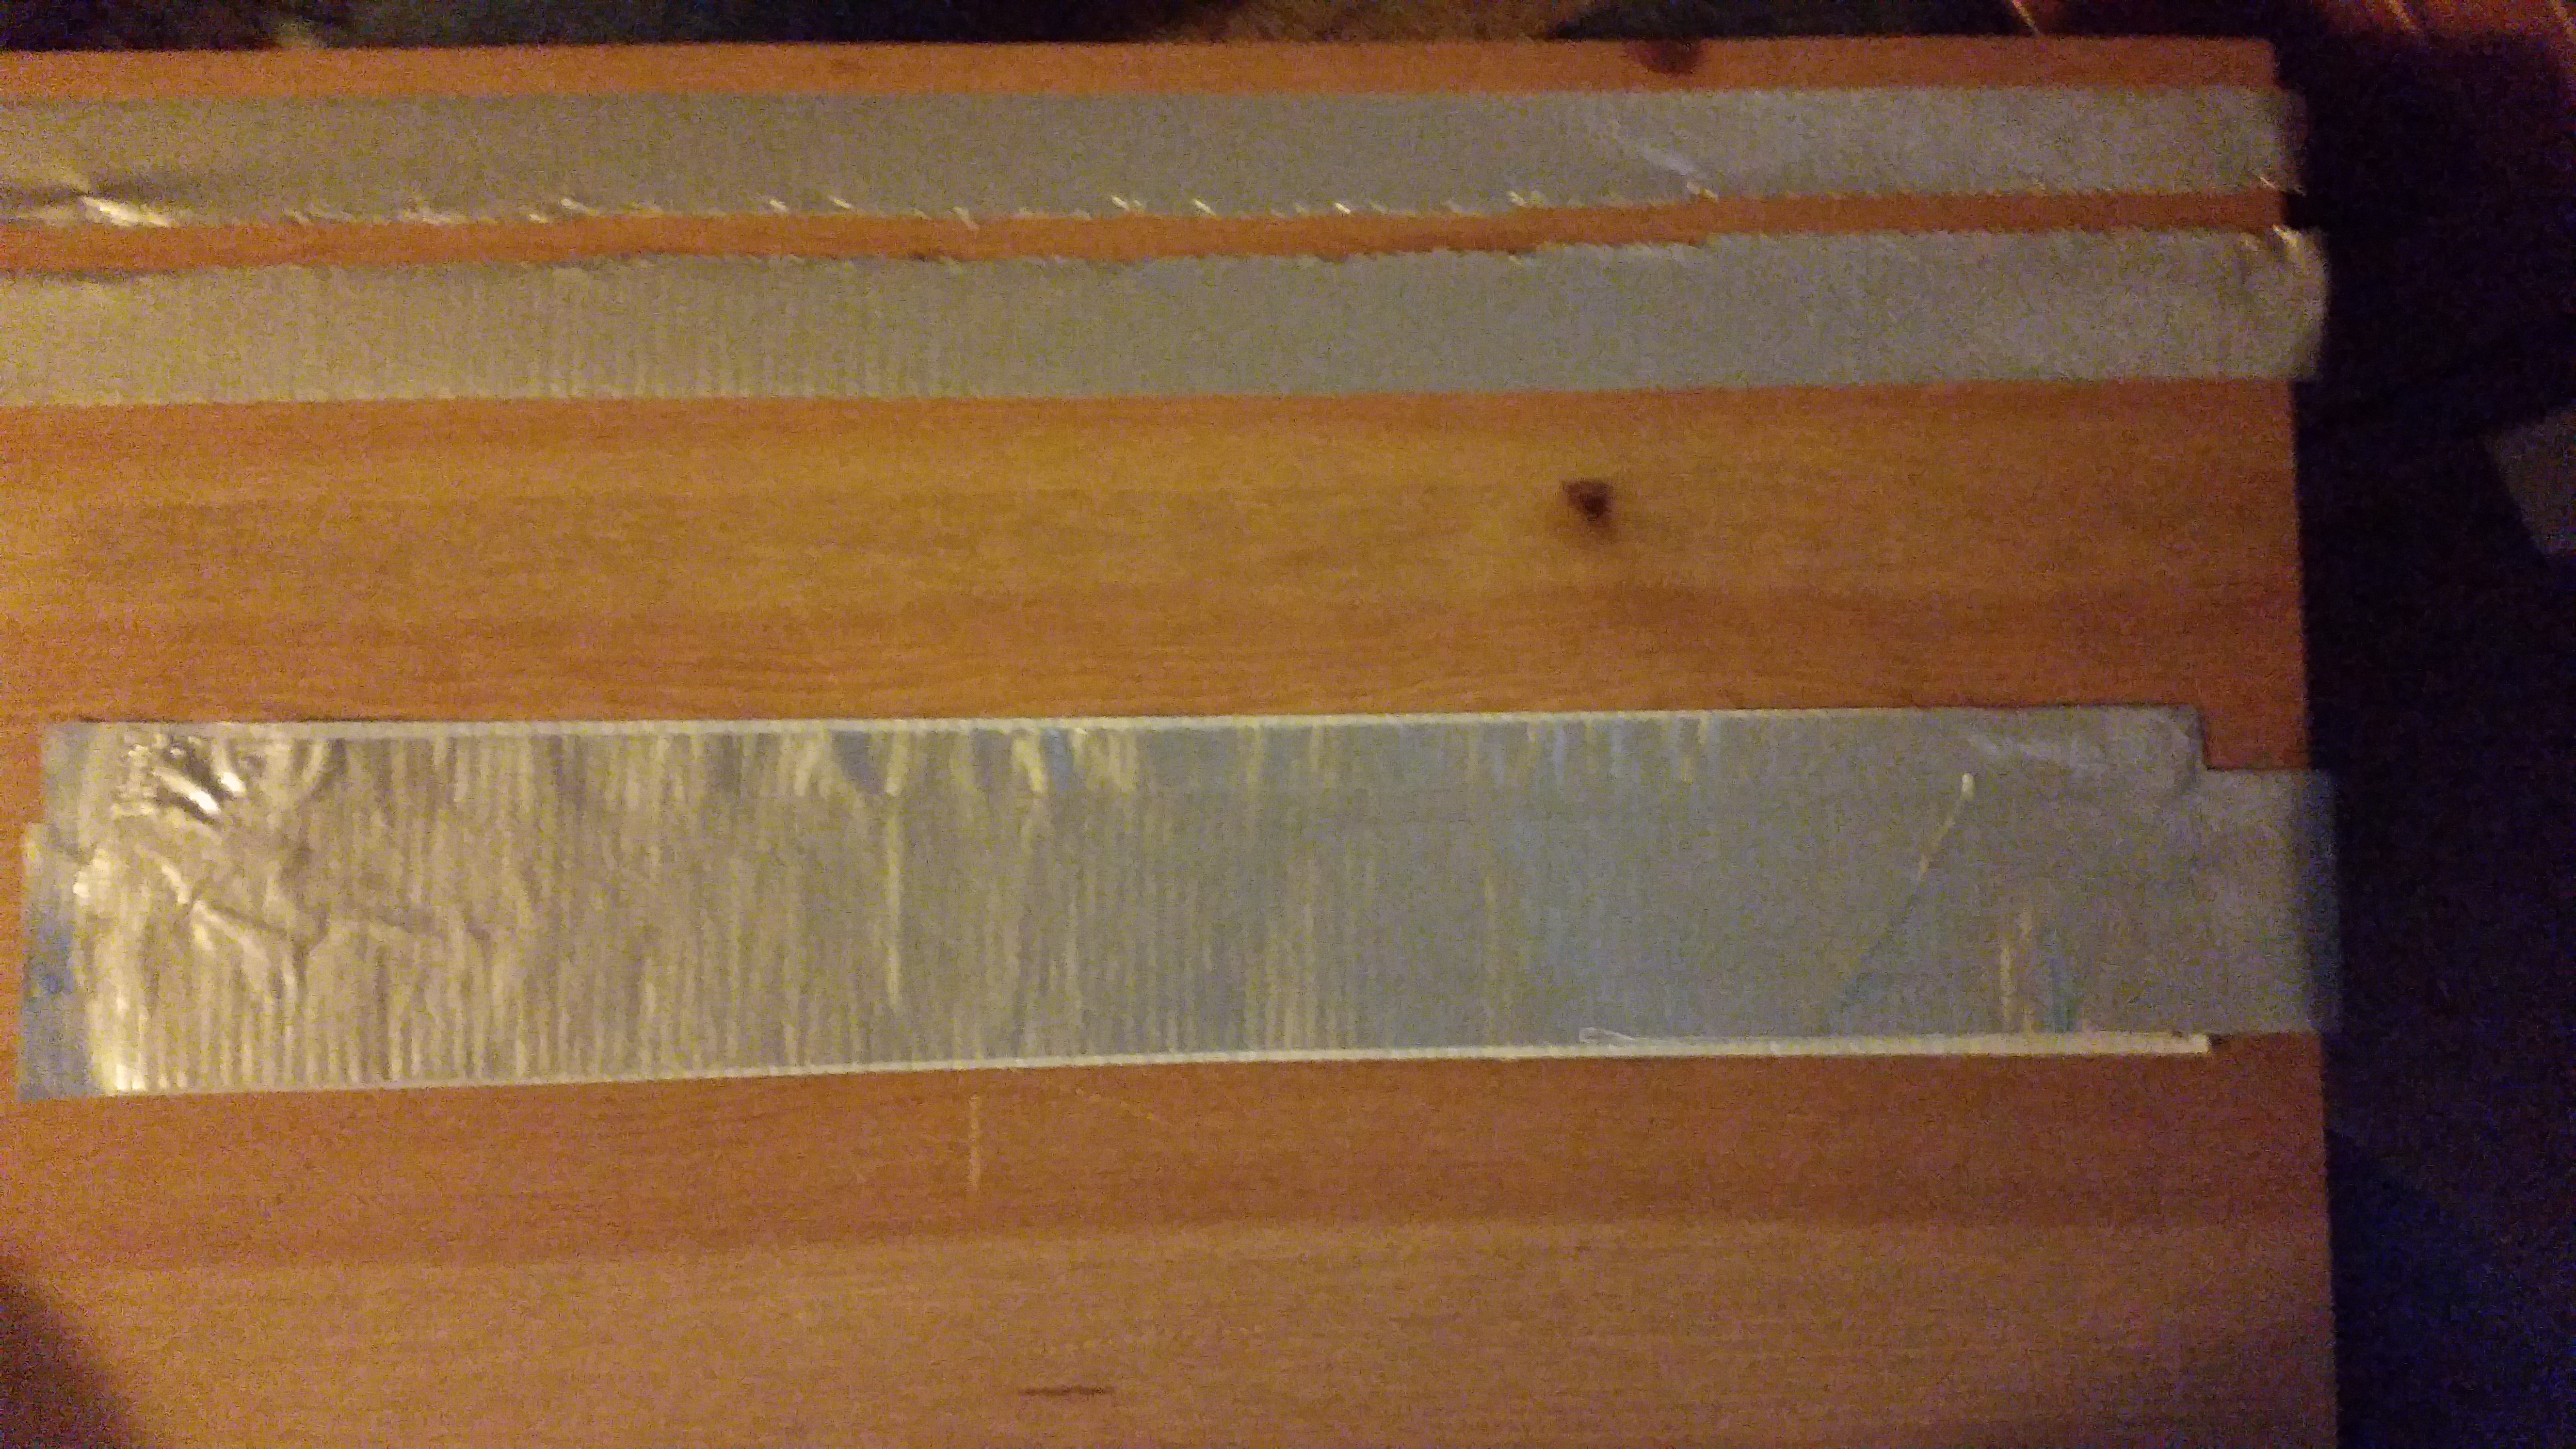 Picture of The Duct Tape Wallet, Making the Strip